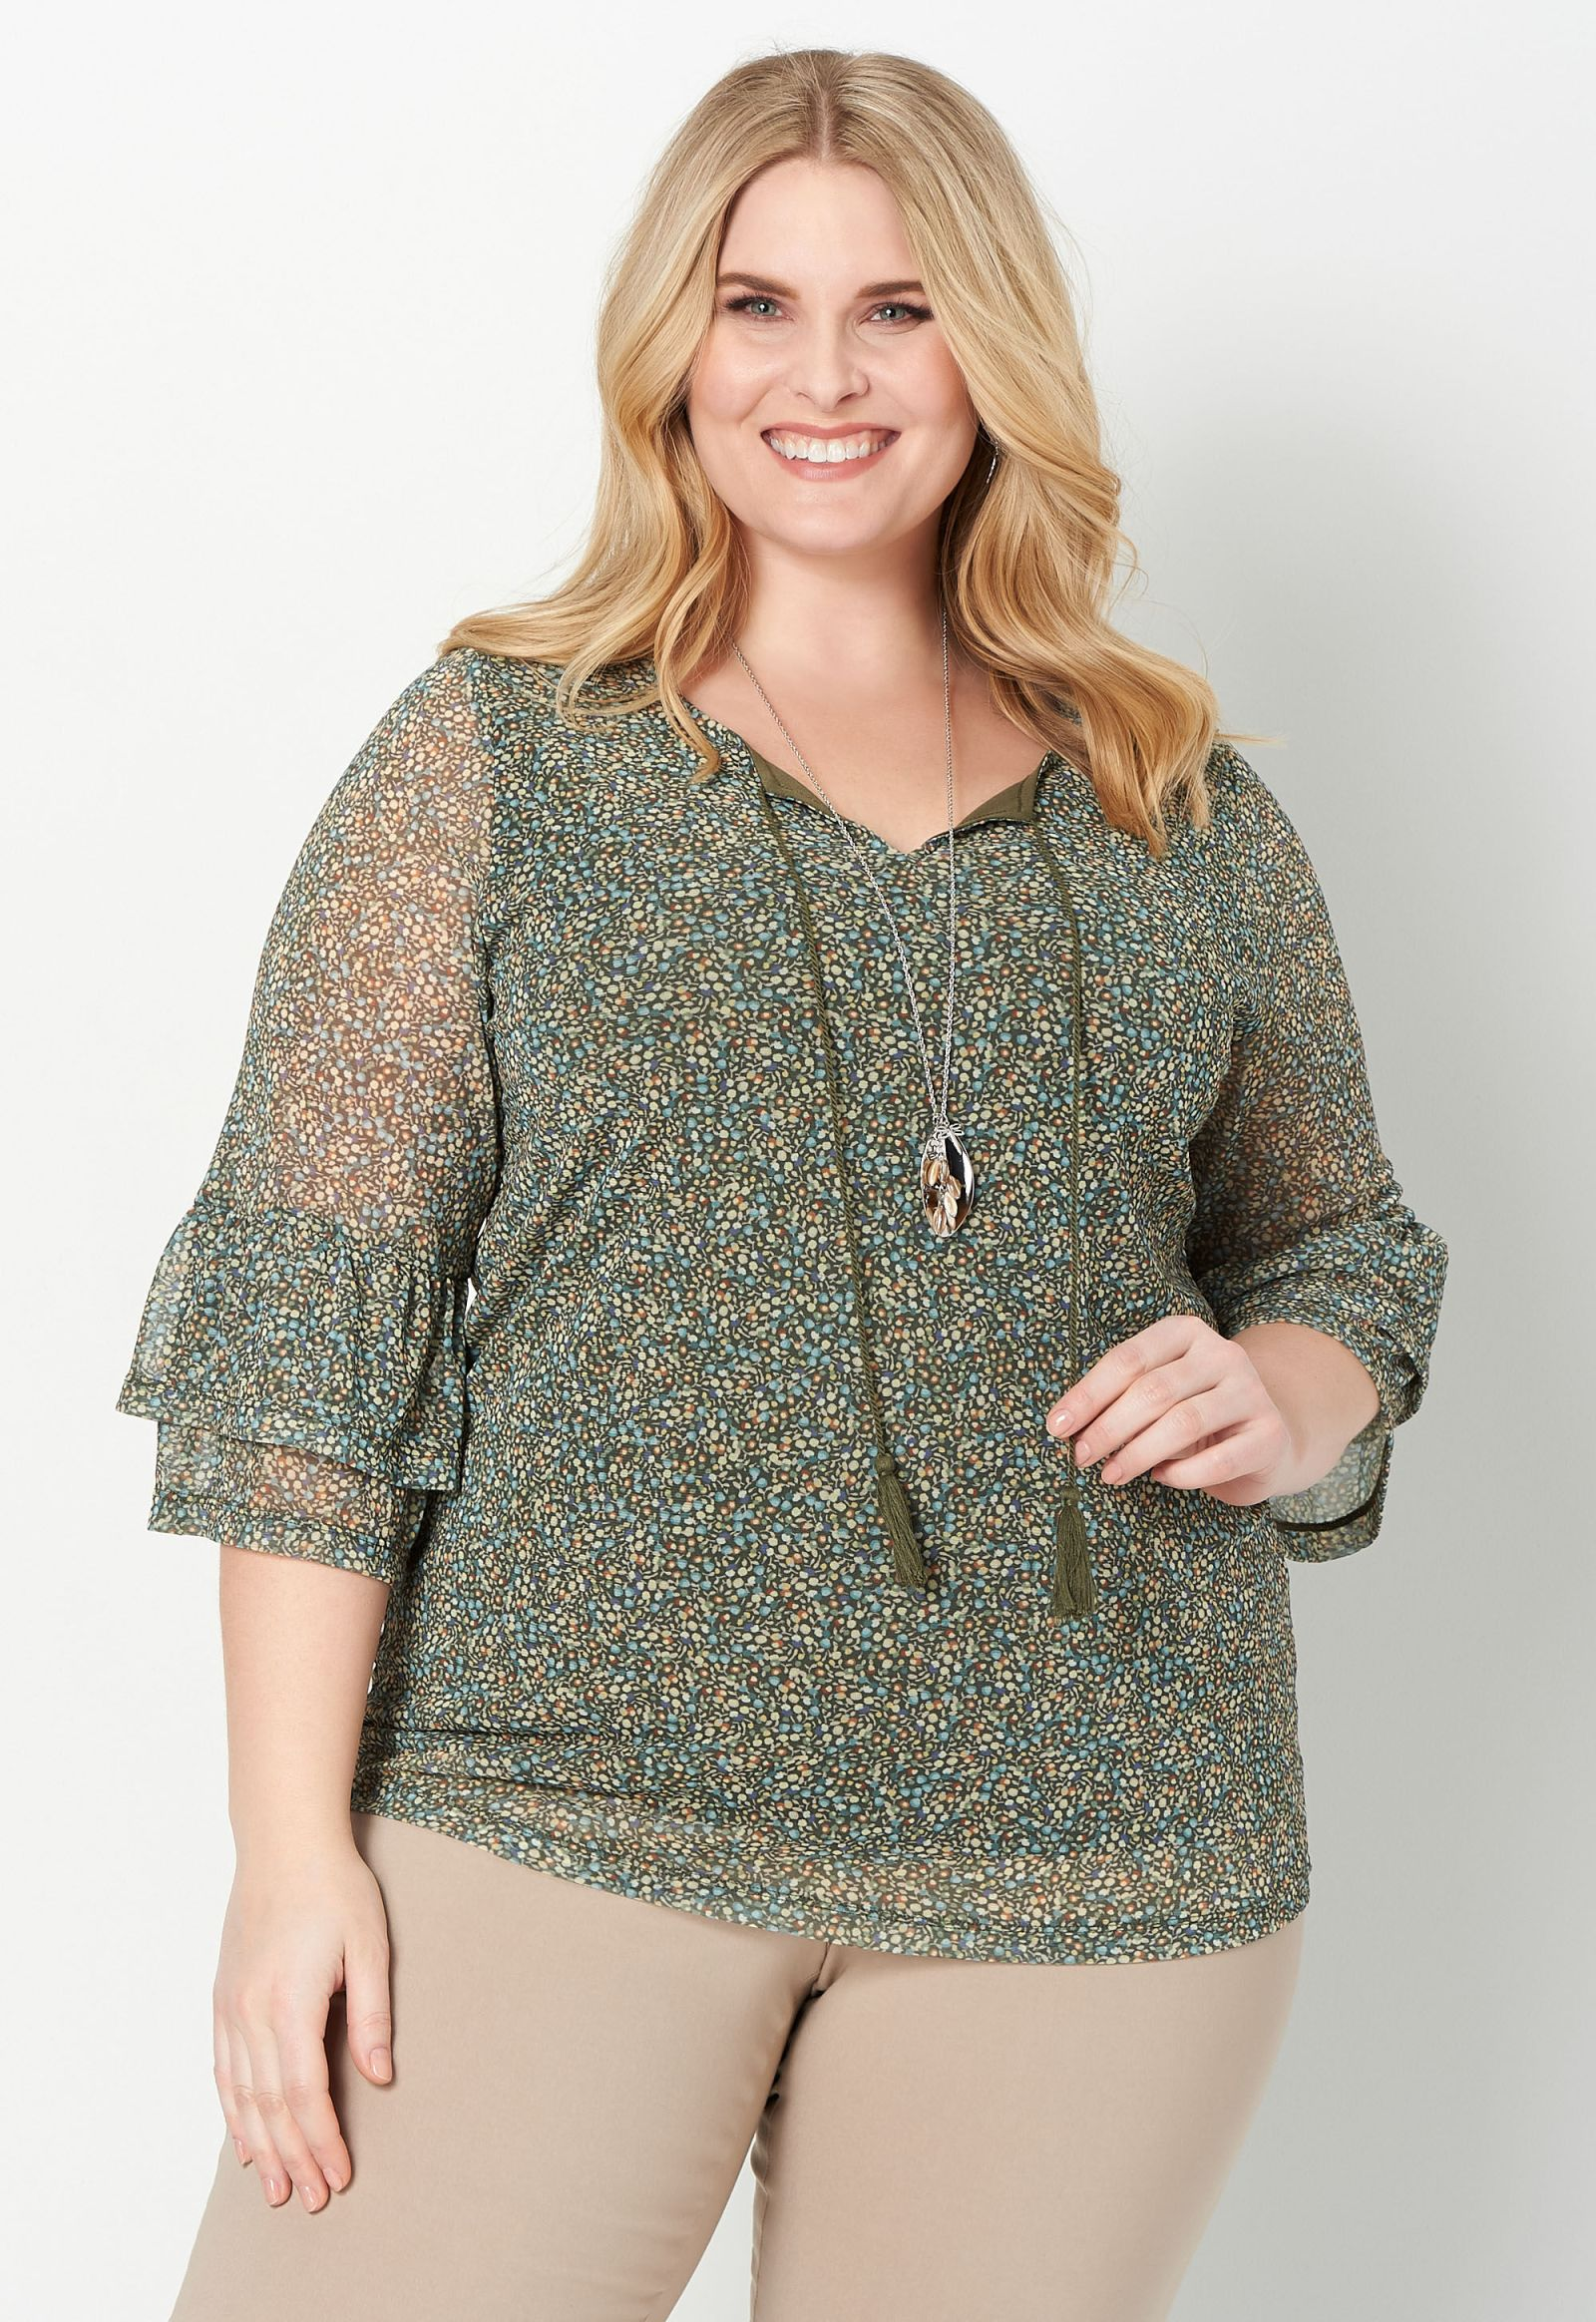 Ditsy Printed Mesh Plus Size Top 2